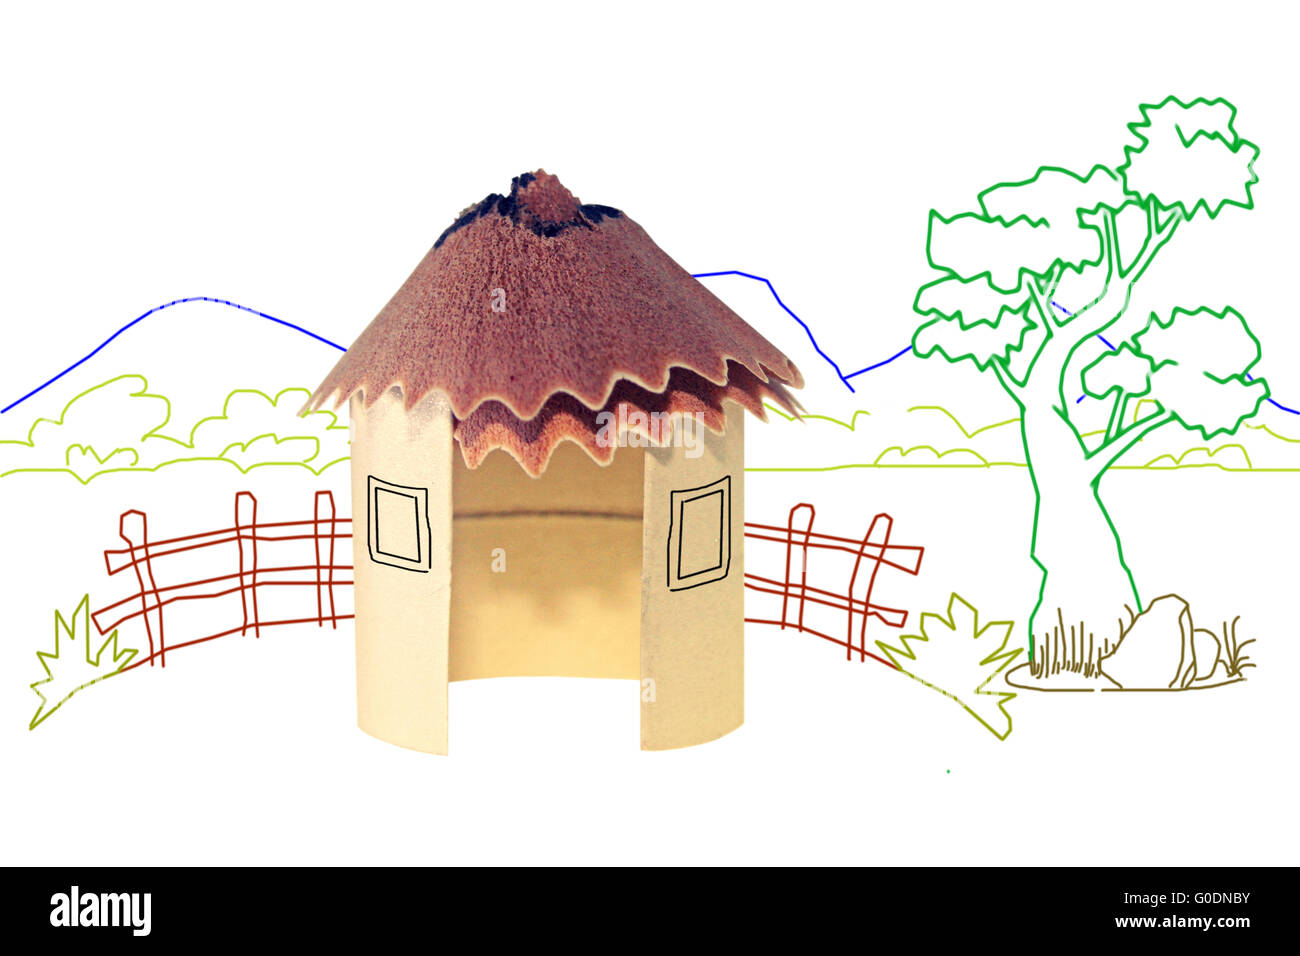 Paper Hut, Pencil Shavings Roof with Line drawing ...